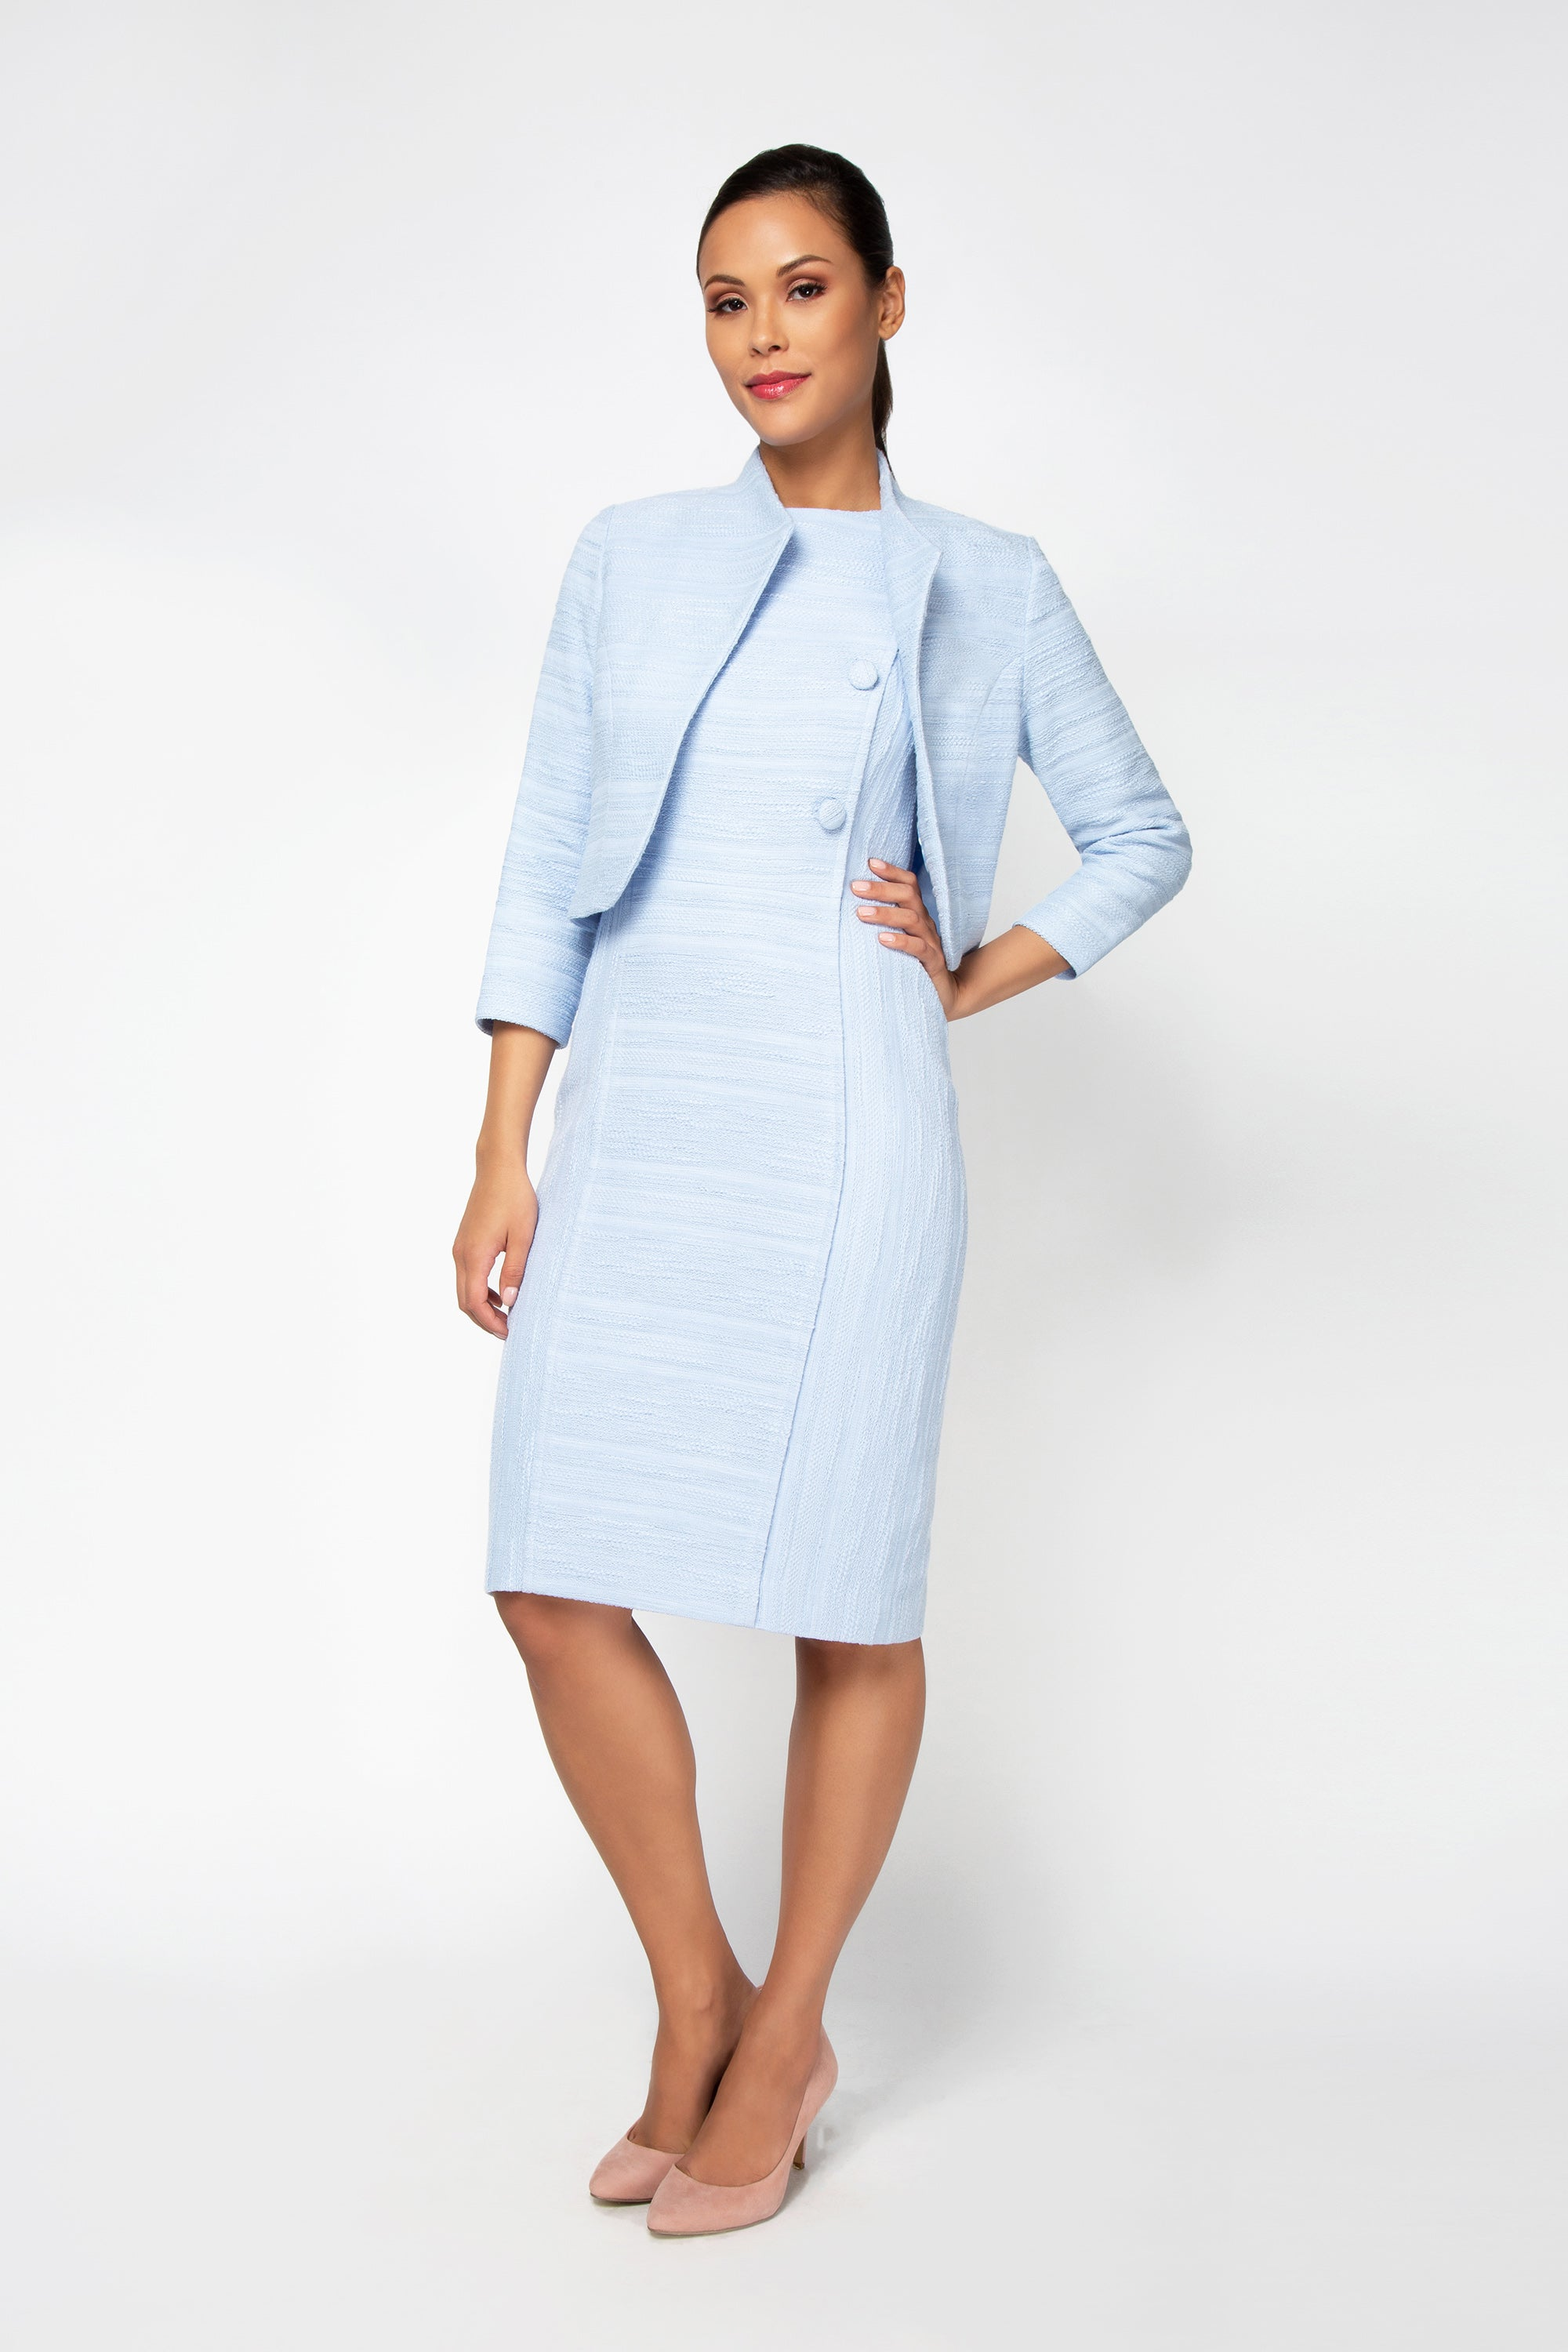 Mila Boucle Jacket - Ice Blue